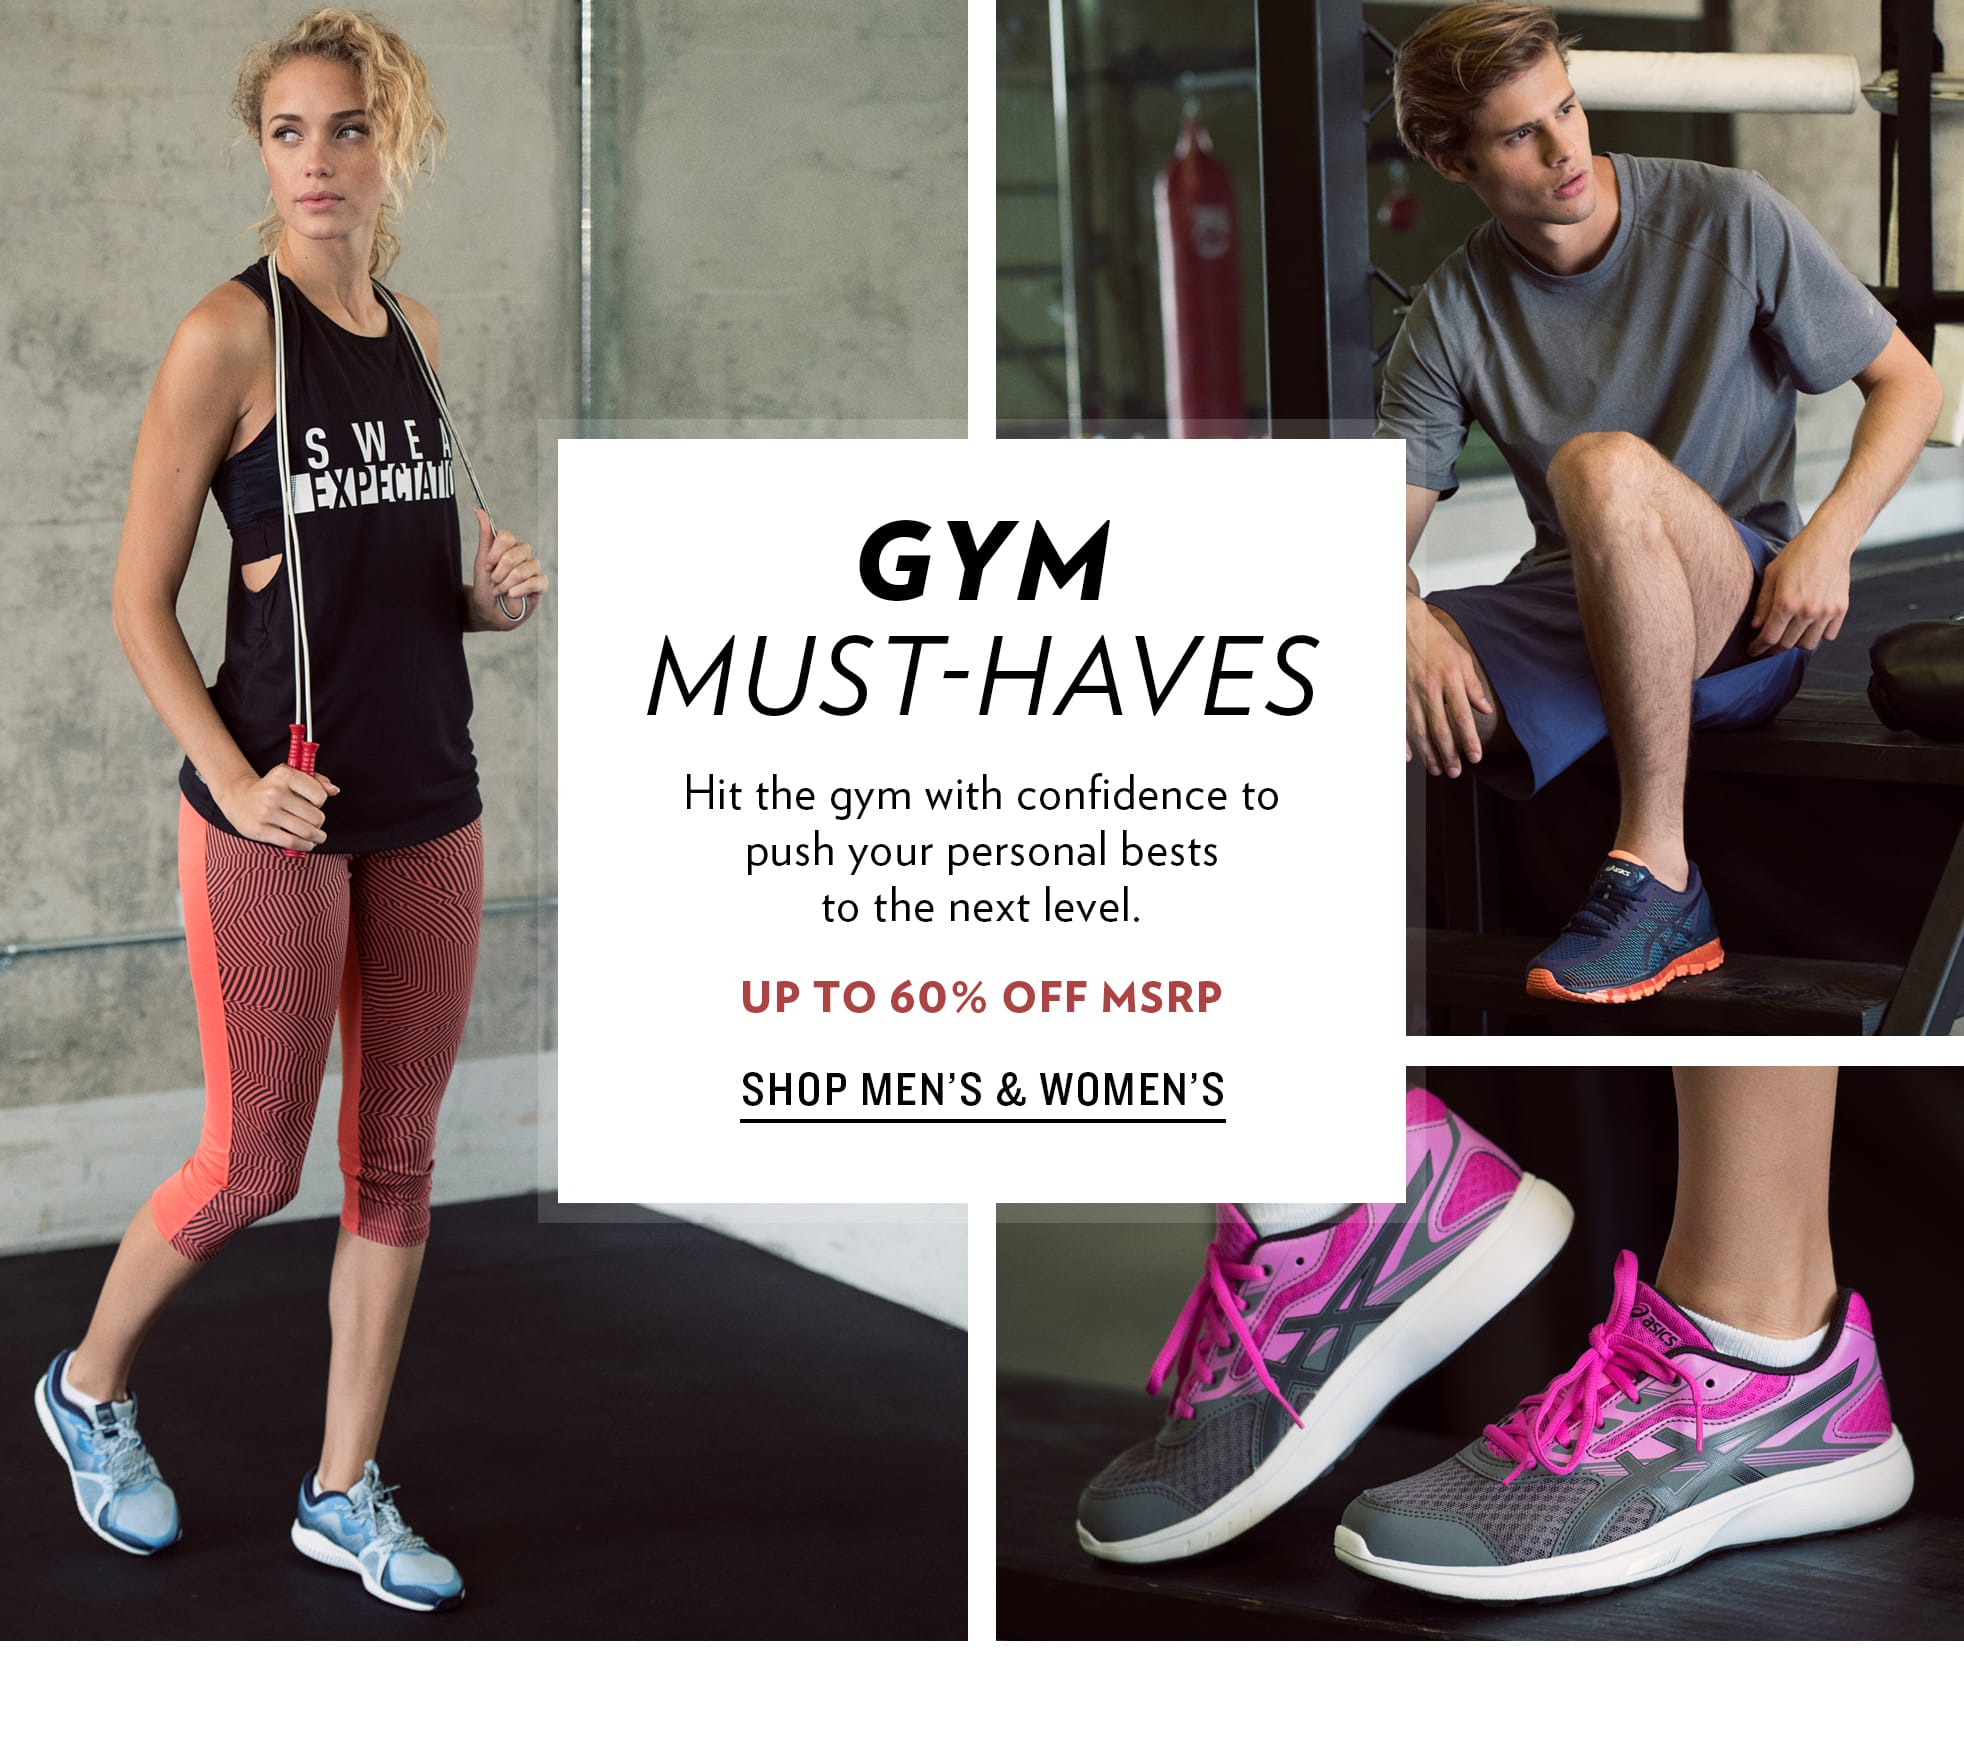 Gym Must-Haves